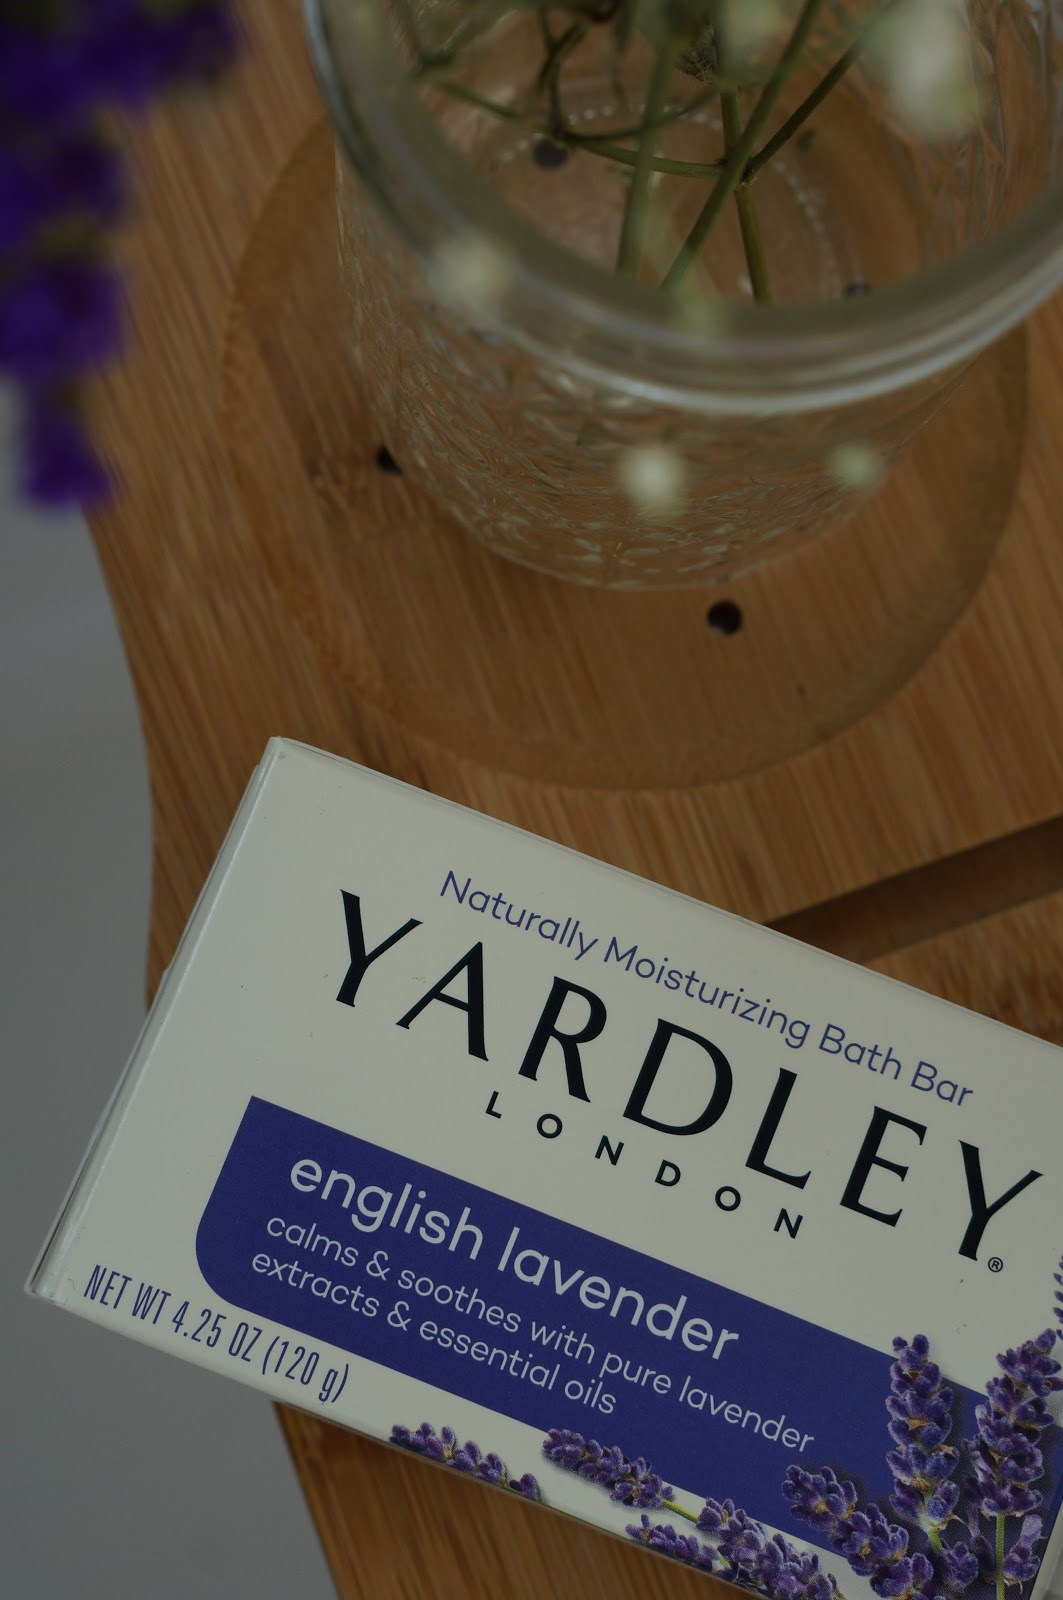 Popular North Carolina style blogger Rebecca Lately shares her pamper routine with Yardley Soaps.  Click here to read her three tips on fitting in me time!